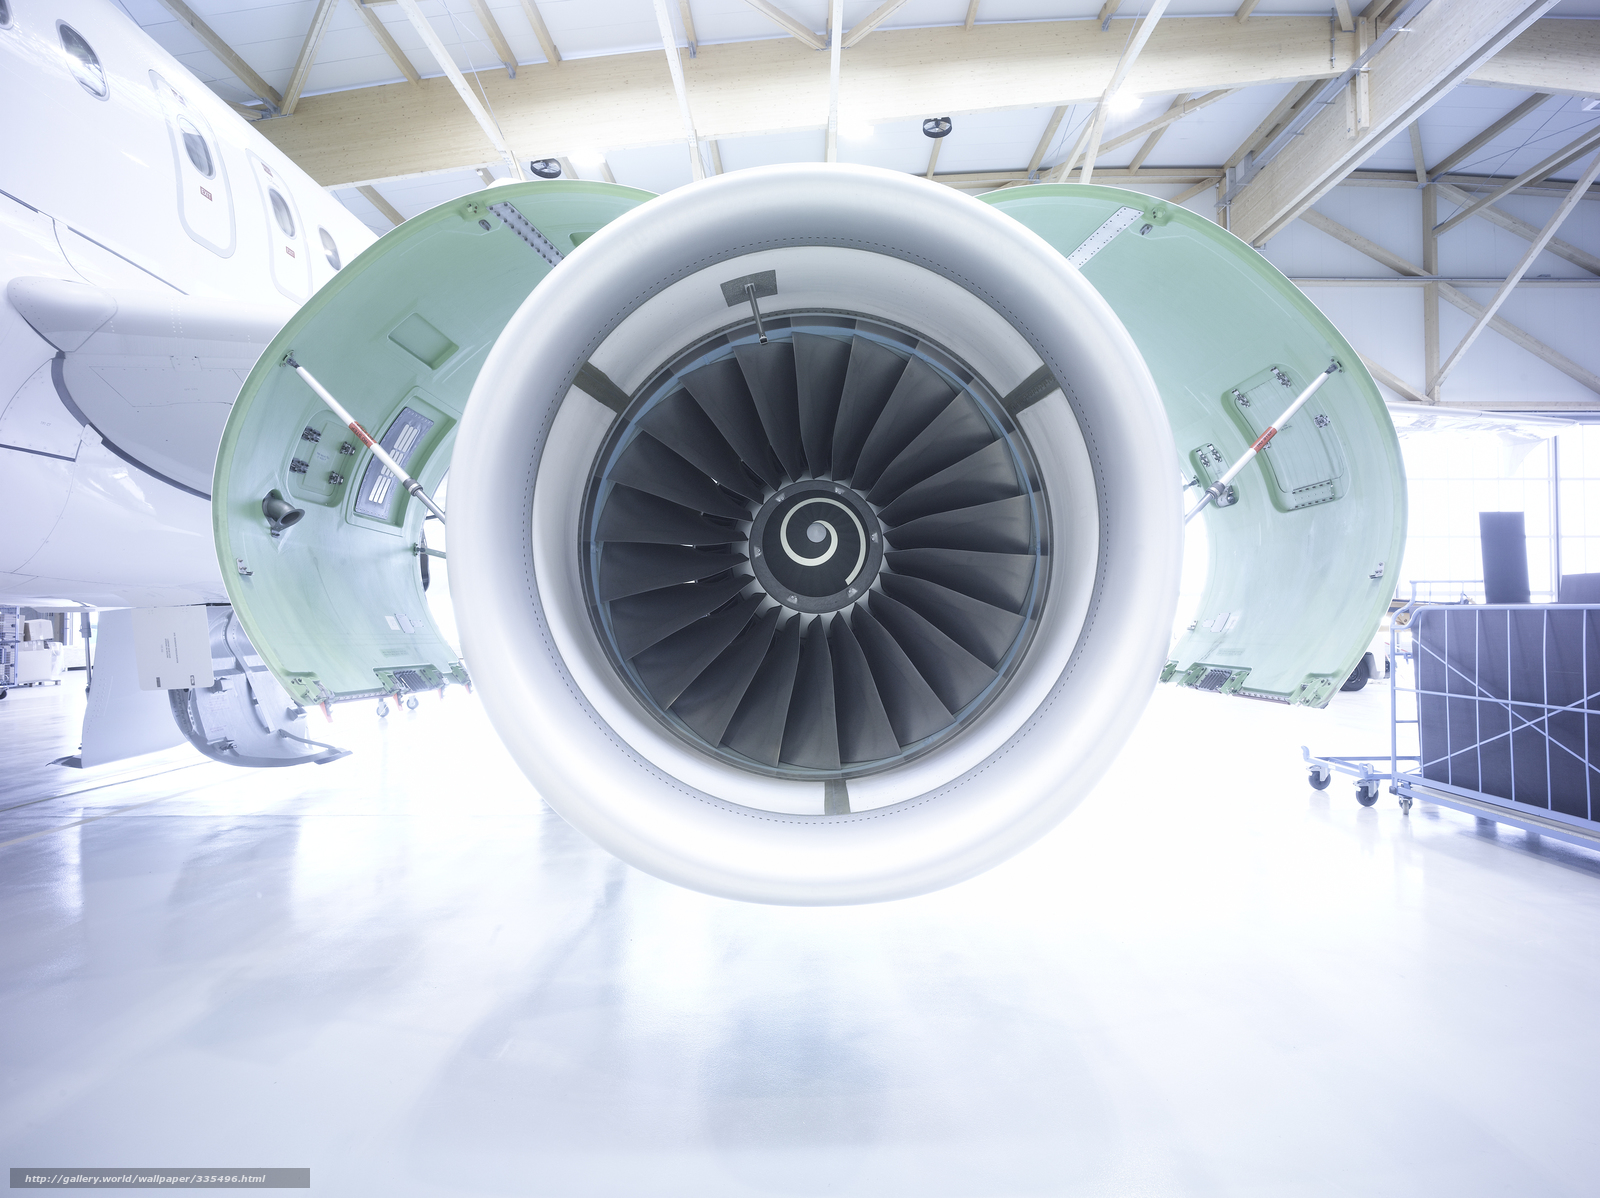 Airplane Turbine Detail Stock Images - Image: 35306124